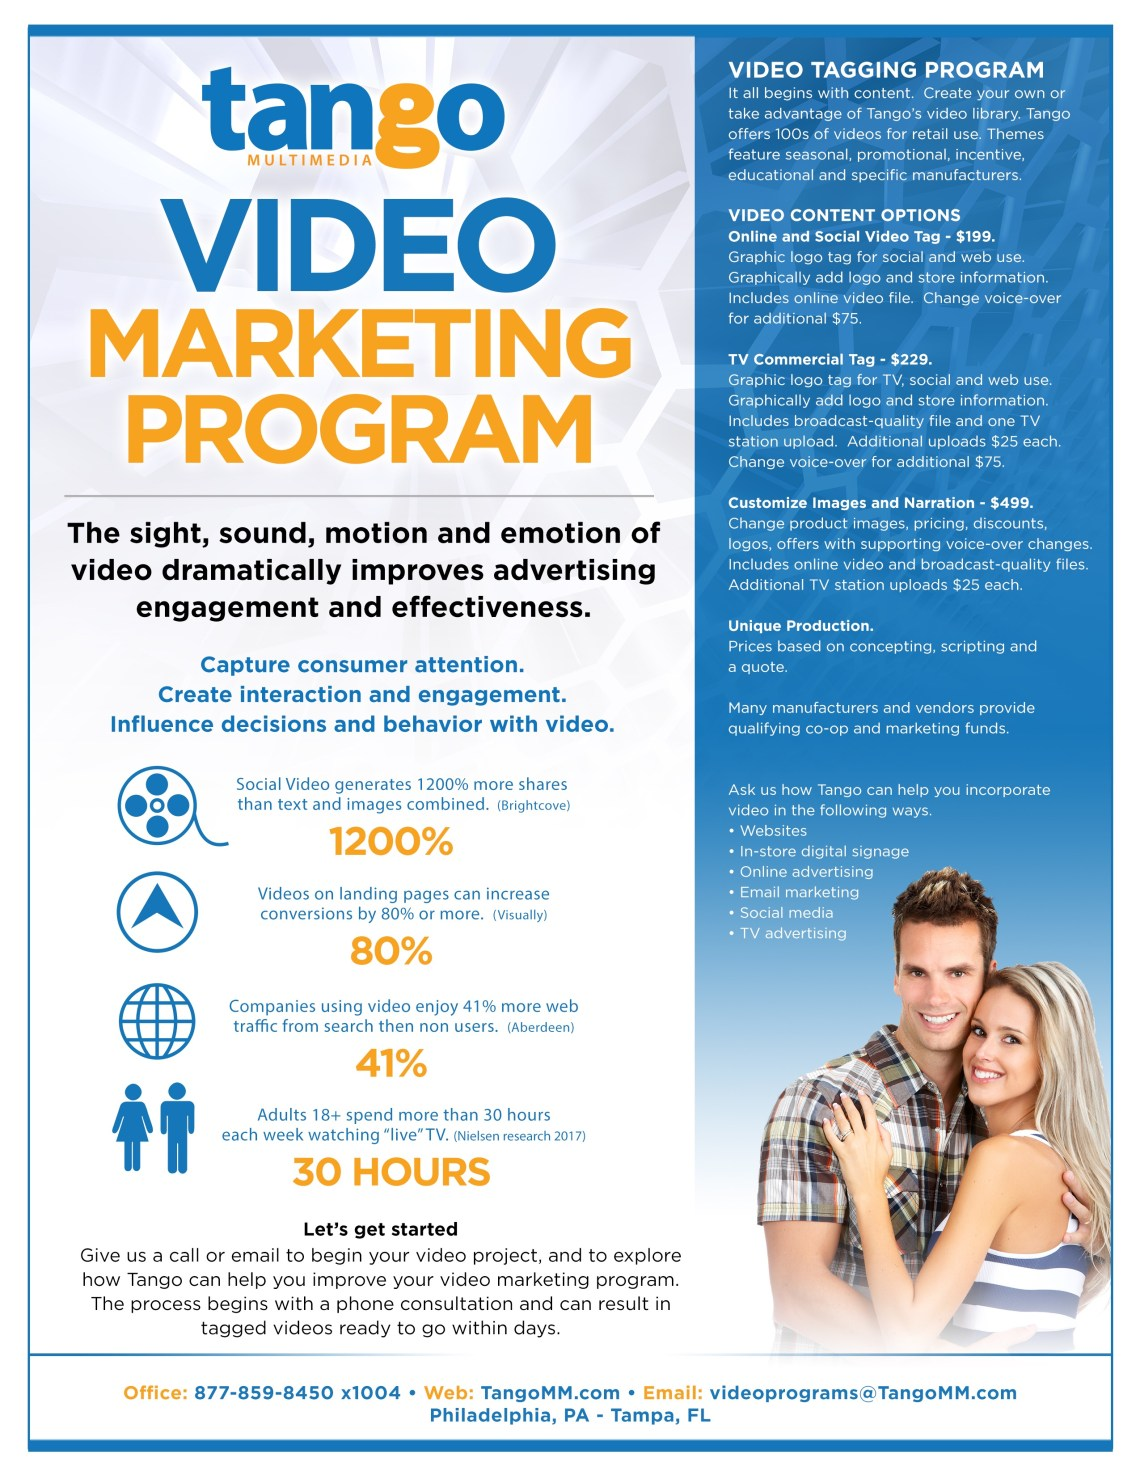 Video Marketing by Tango